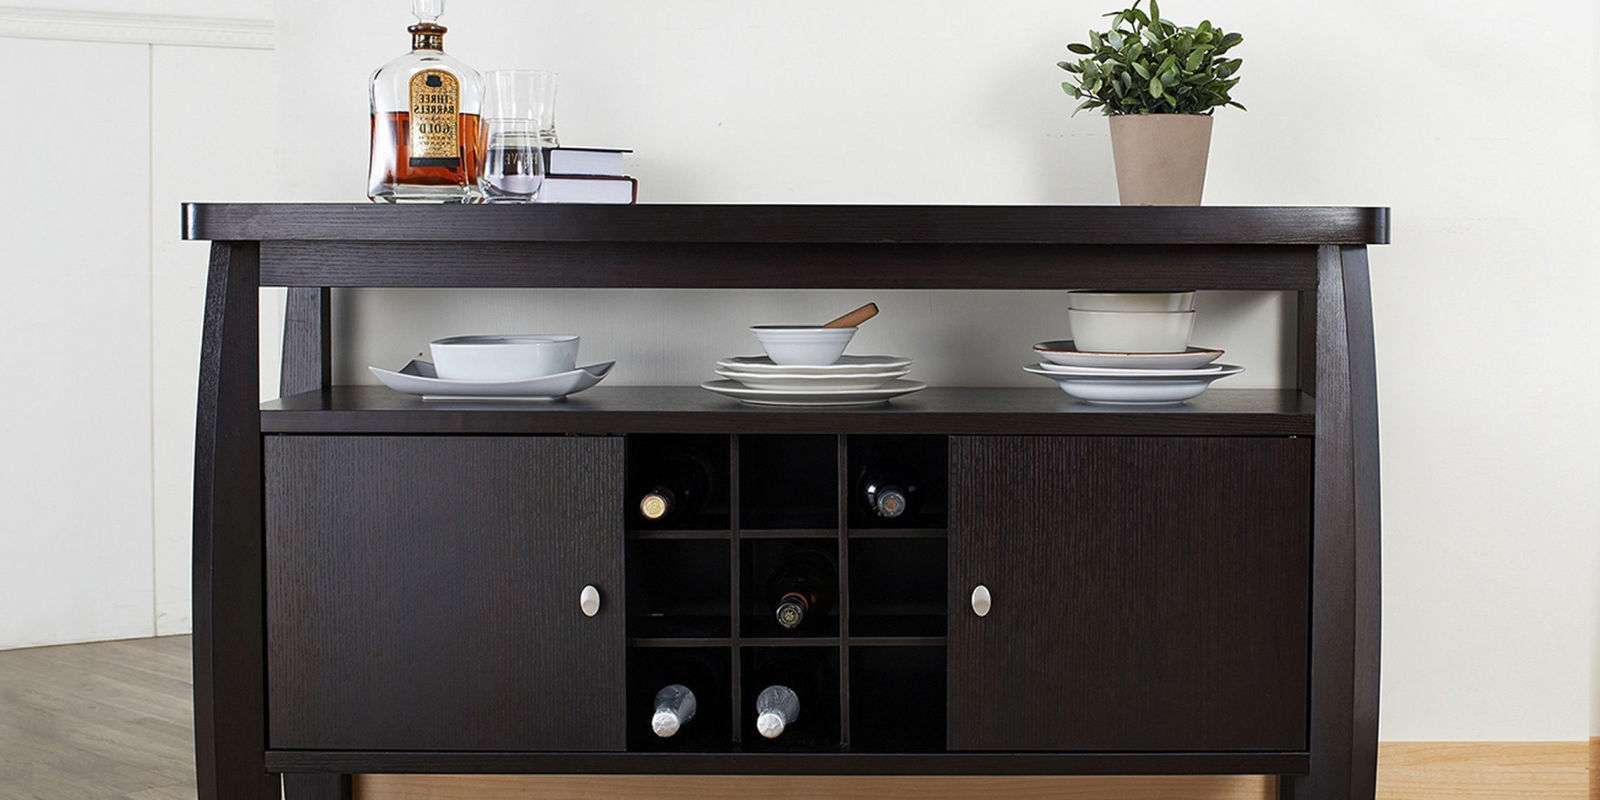 11 Best Sideboards And Buffets In 2018 – Reviews Of Sideboards Throughout Small Dining Room Sideboards (View 1 of 20)